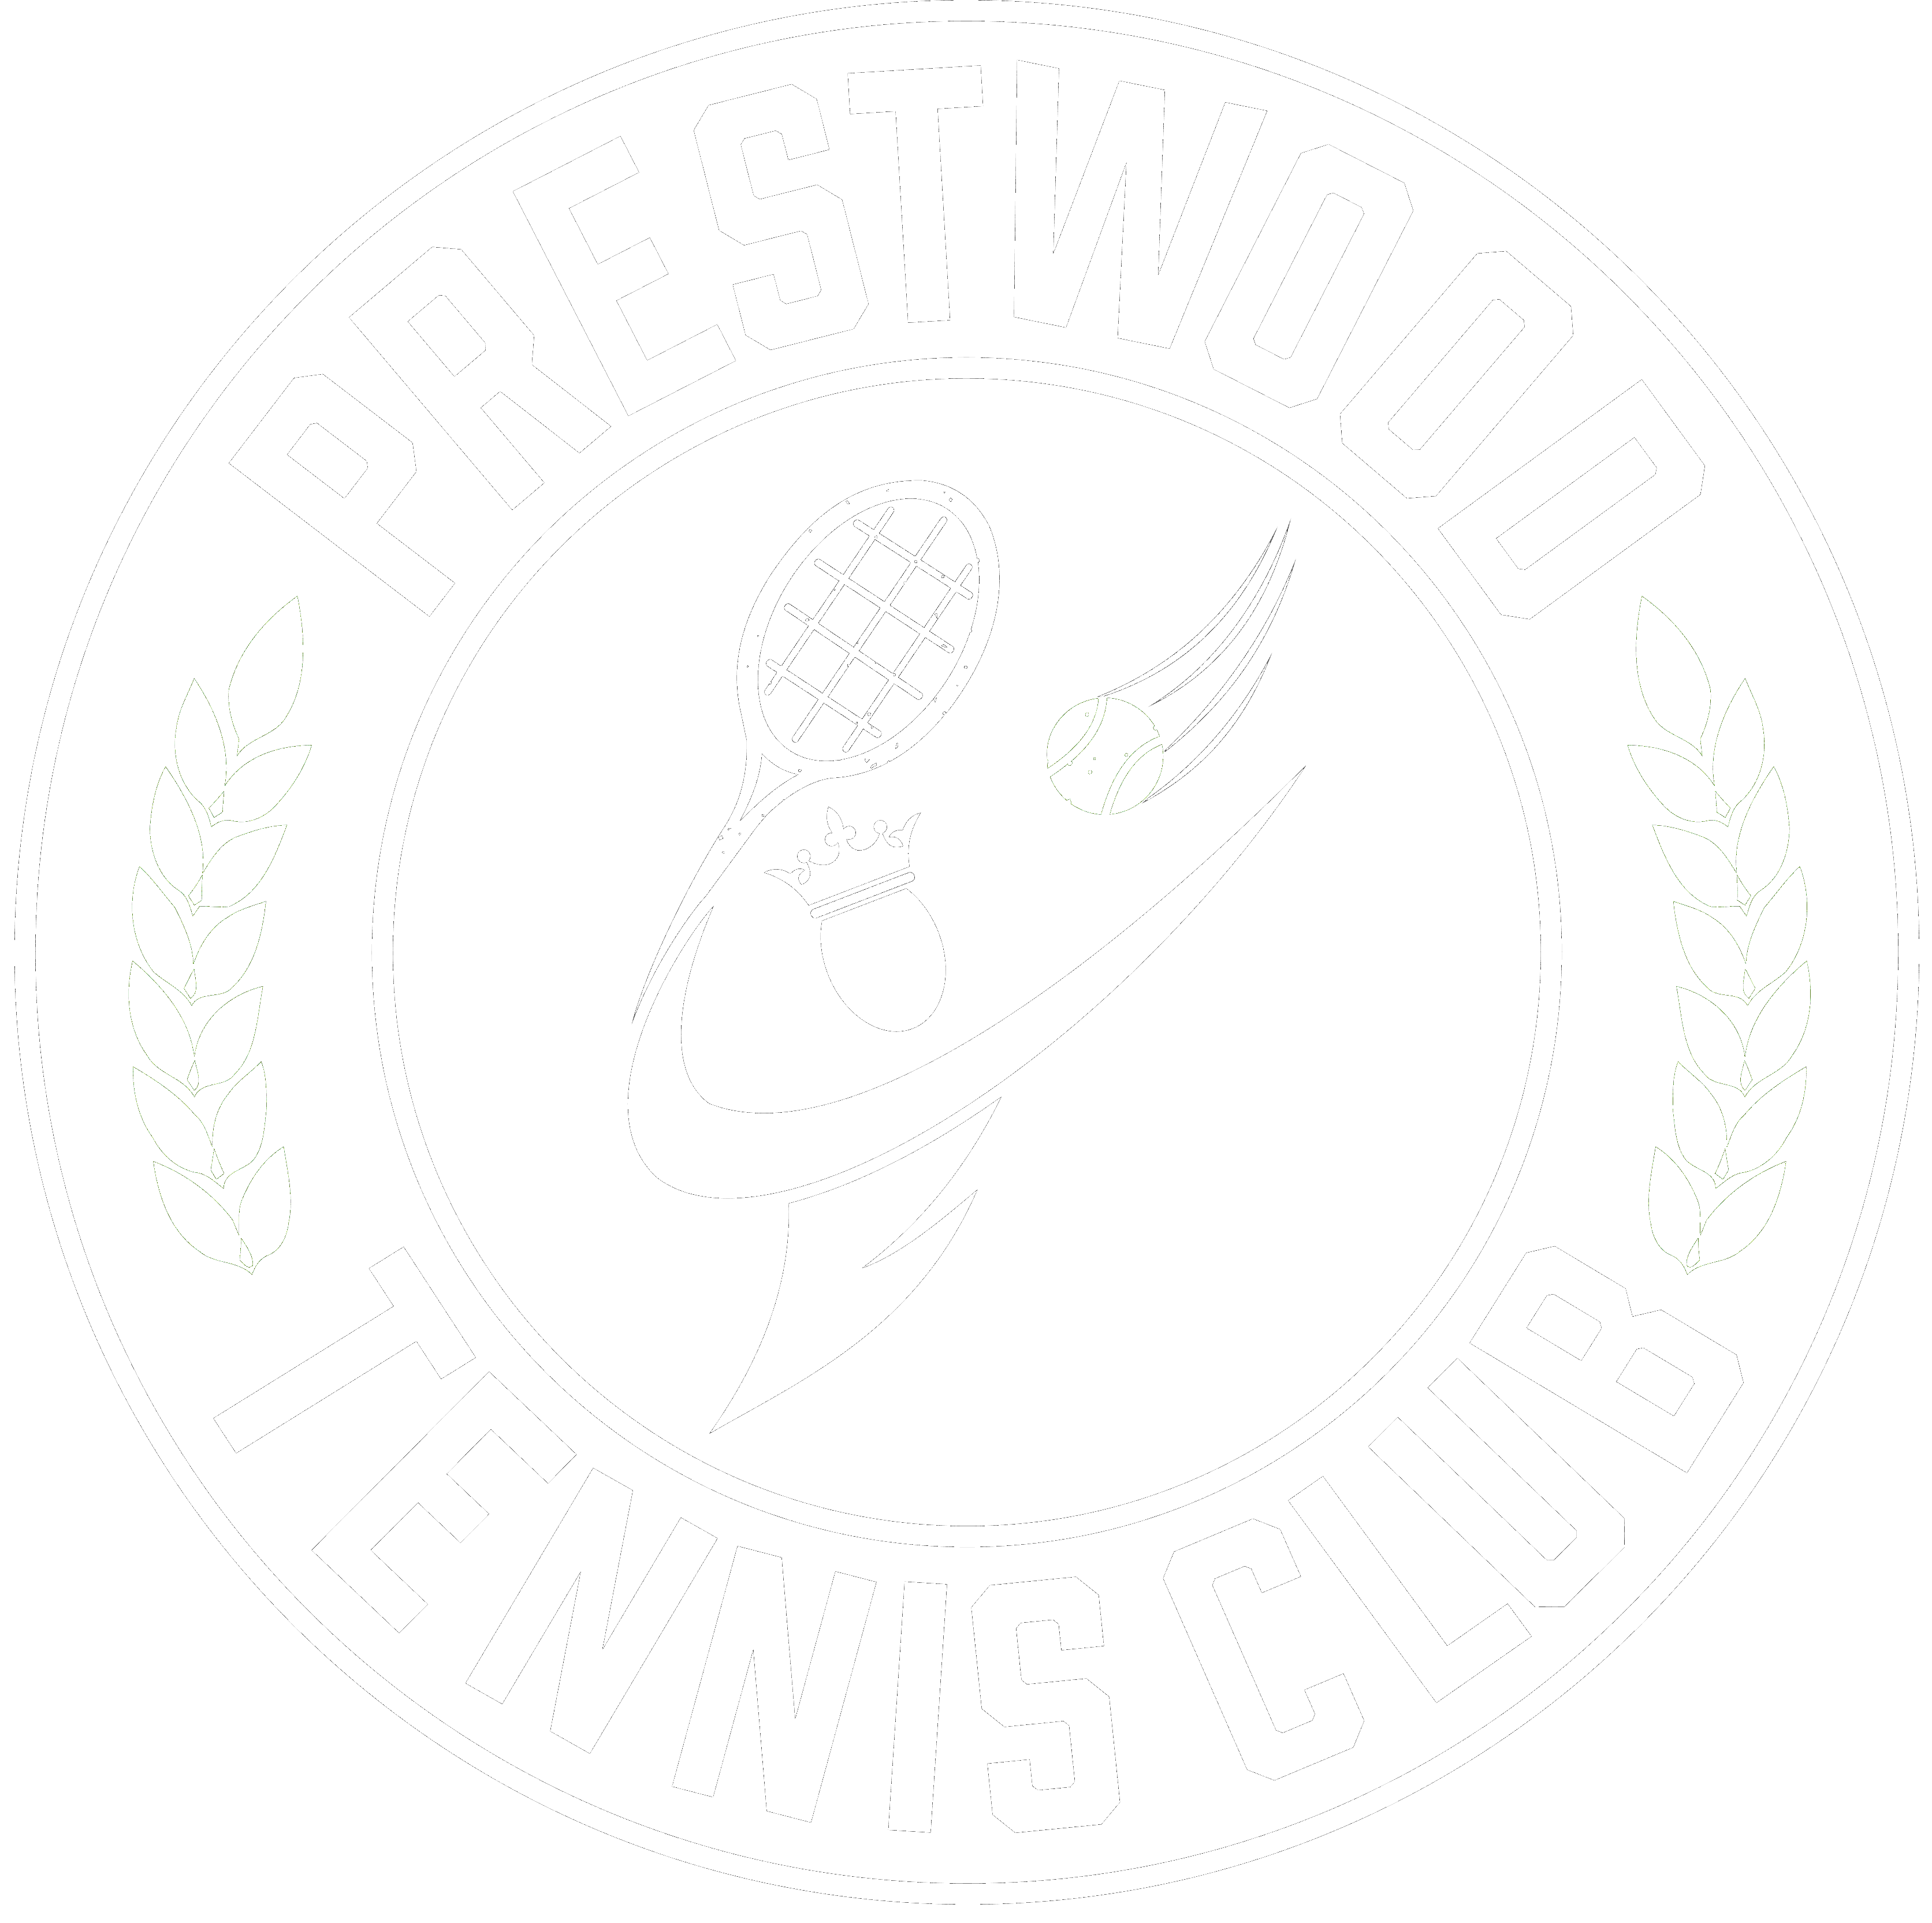 prestwood tennis club logo